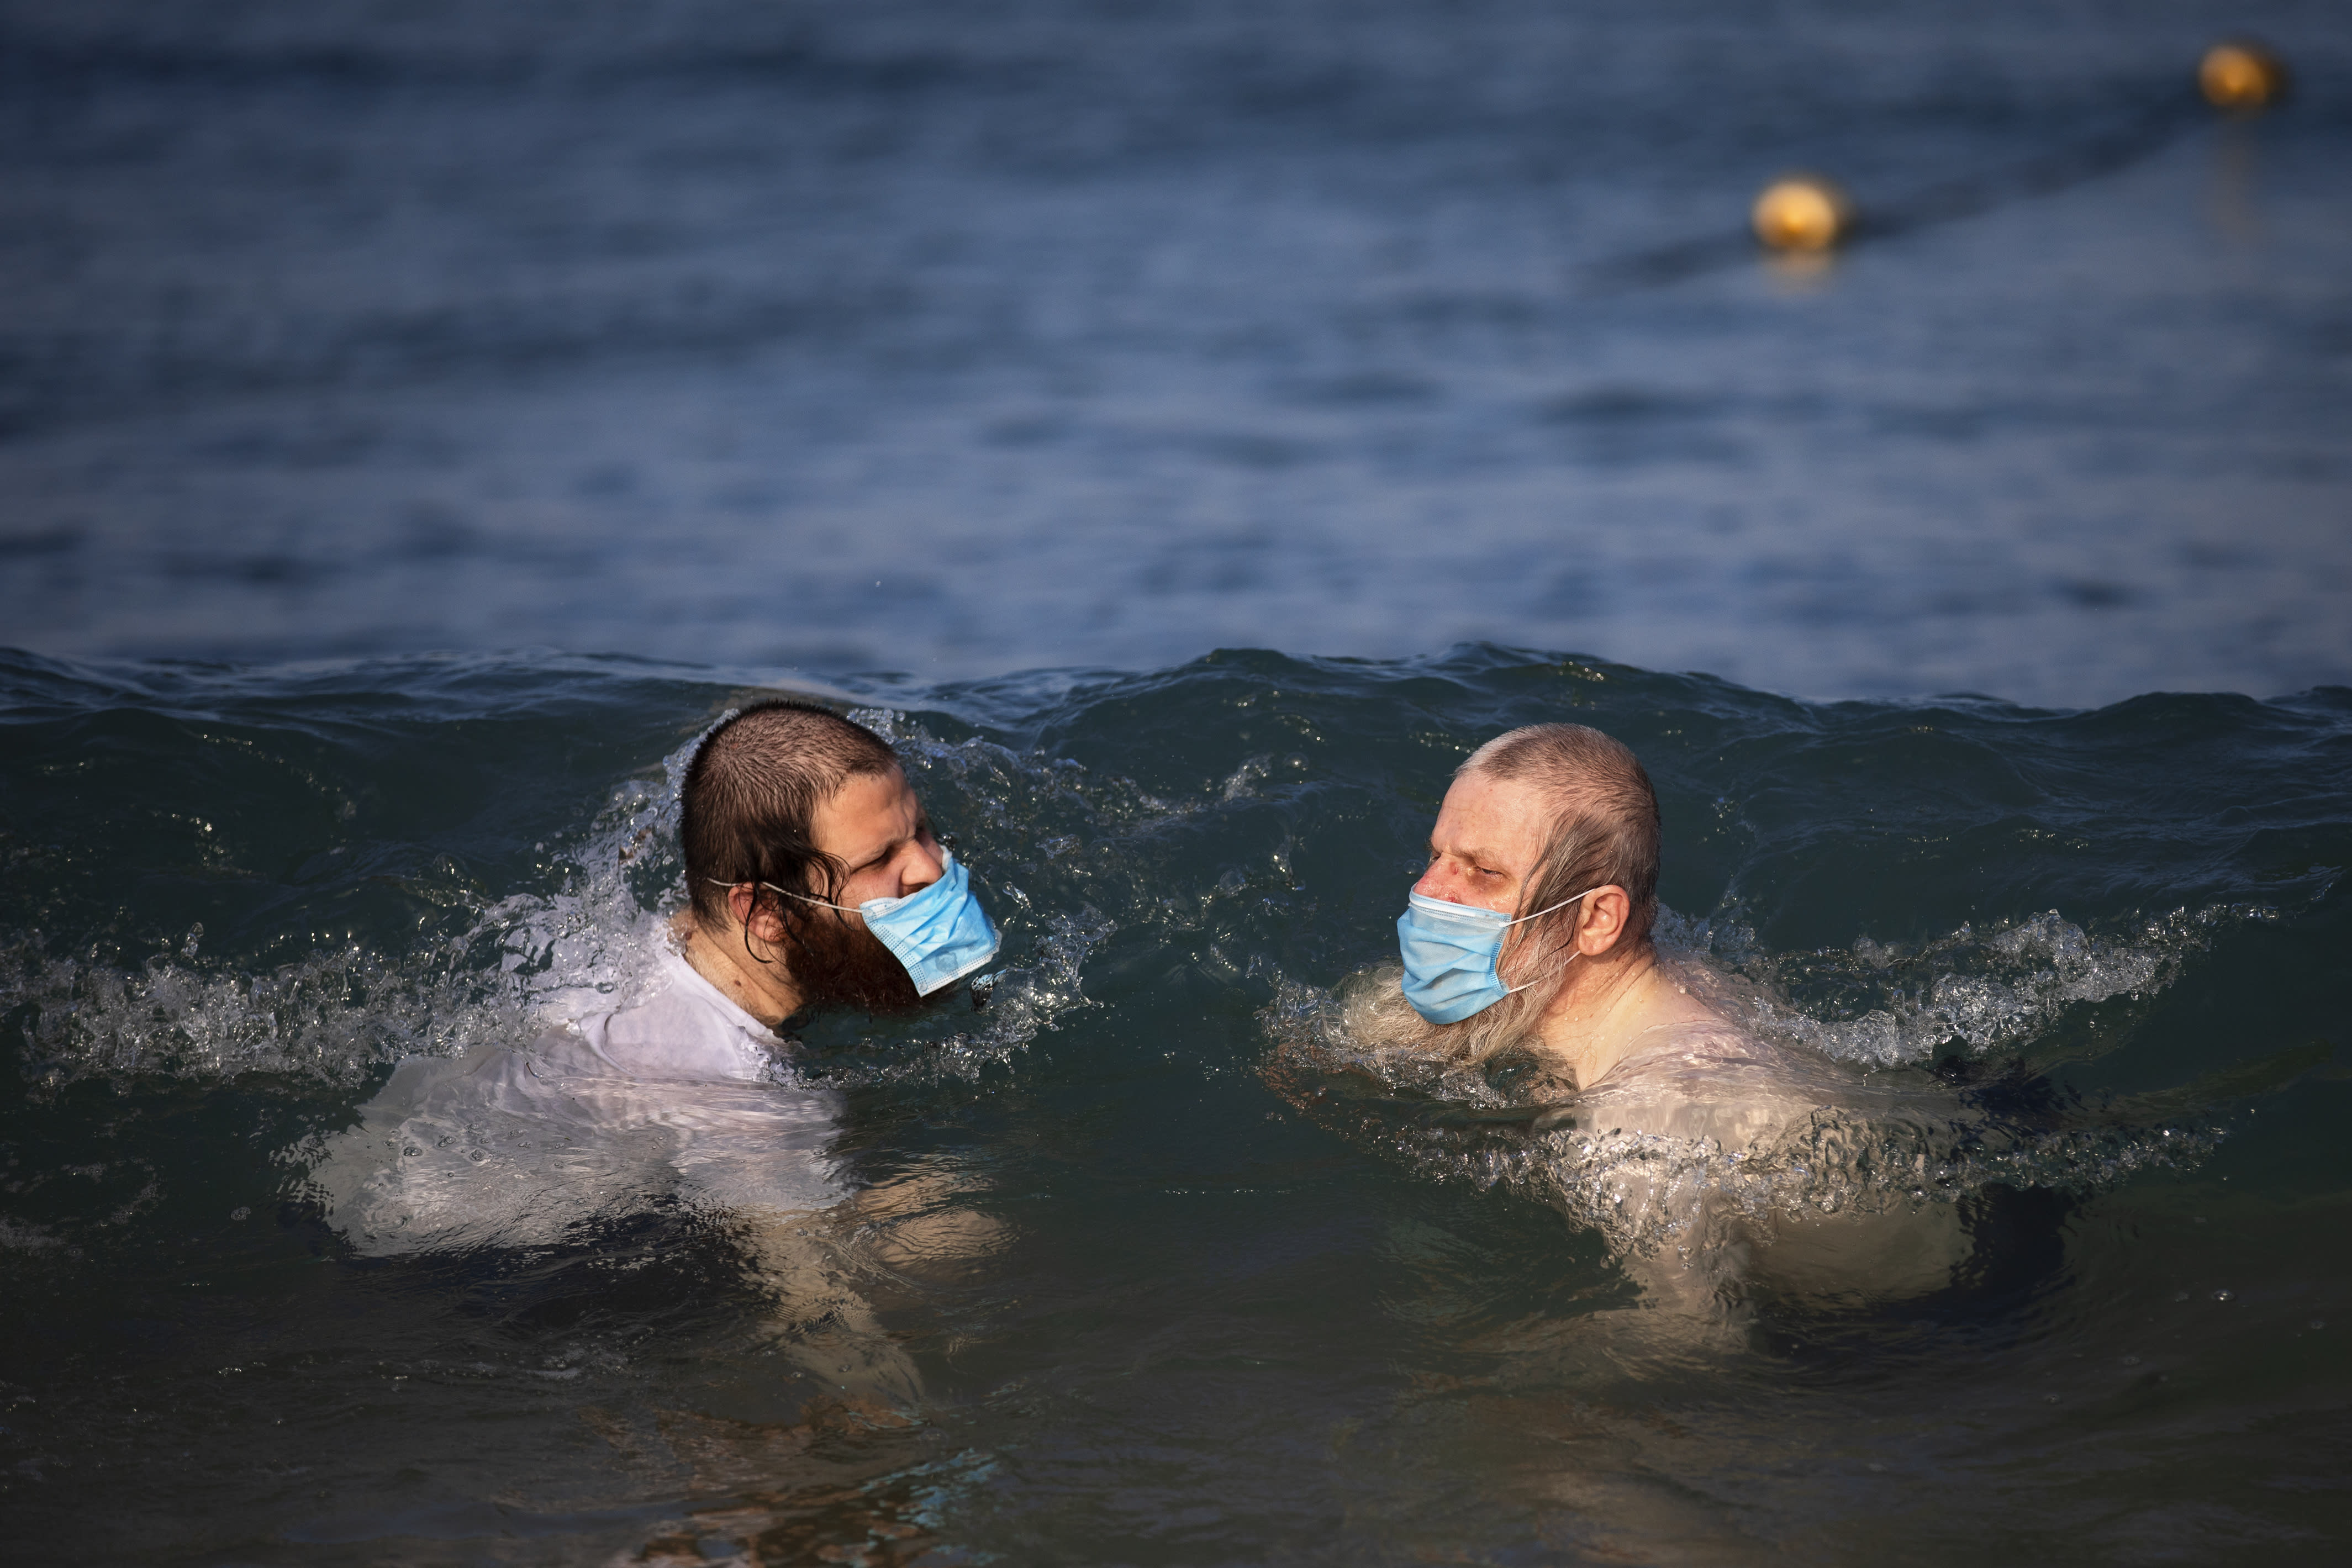 Ultra-orthodox Jewish men wearing protective face masks swim in the Mediterranean Sea, on a beach segregated for males three days a week, in Tel Aviv, Israel, Wednesday, July 8, 2020. In an effort to quell the rapid spread of the coronavirus, Israel has re-imposed a series of restrictions on the public. This week, the Israeli government limited gatherings and ordered reception halls, restaurants, bars, theaters, fitness centers and pools be shut down again. (AP Photo/Oded Balilty)